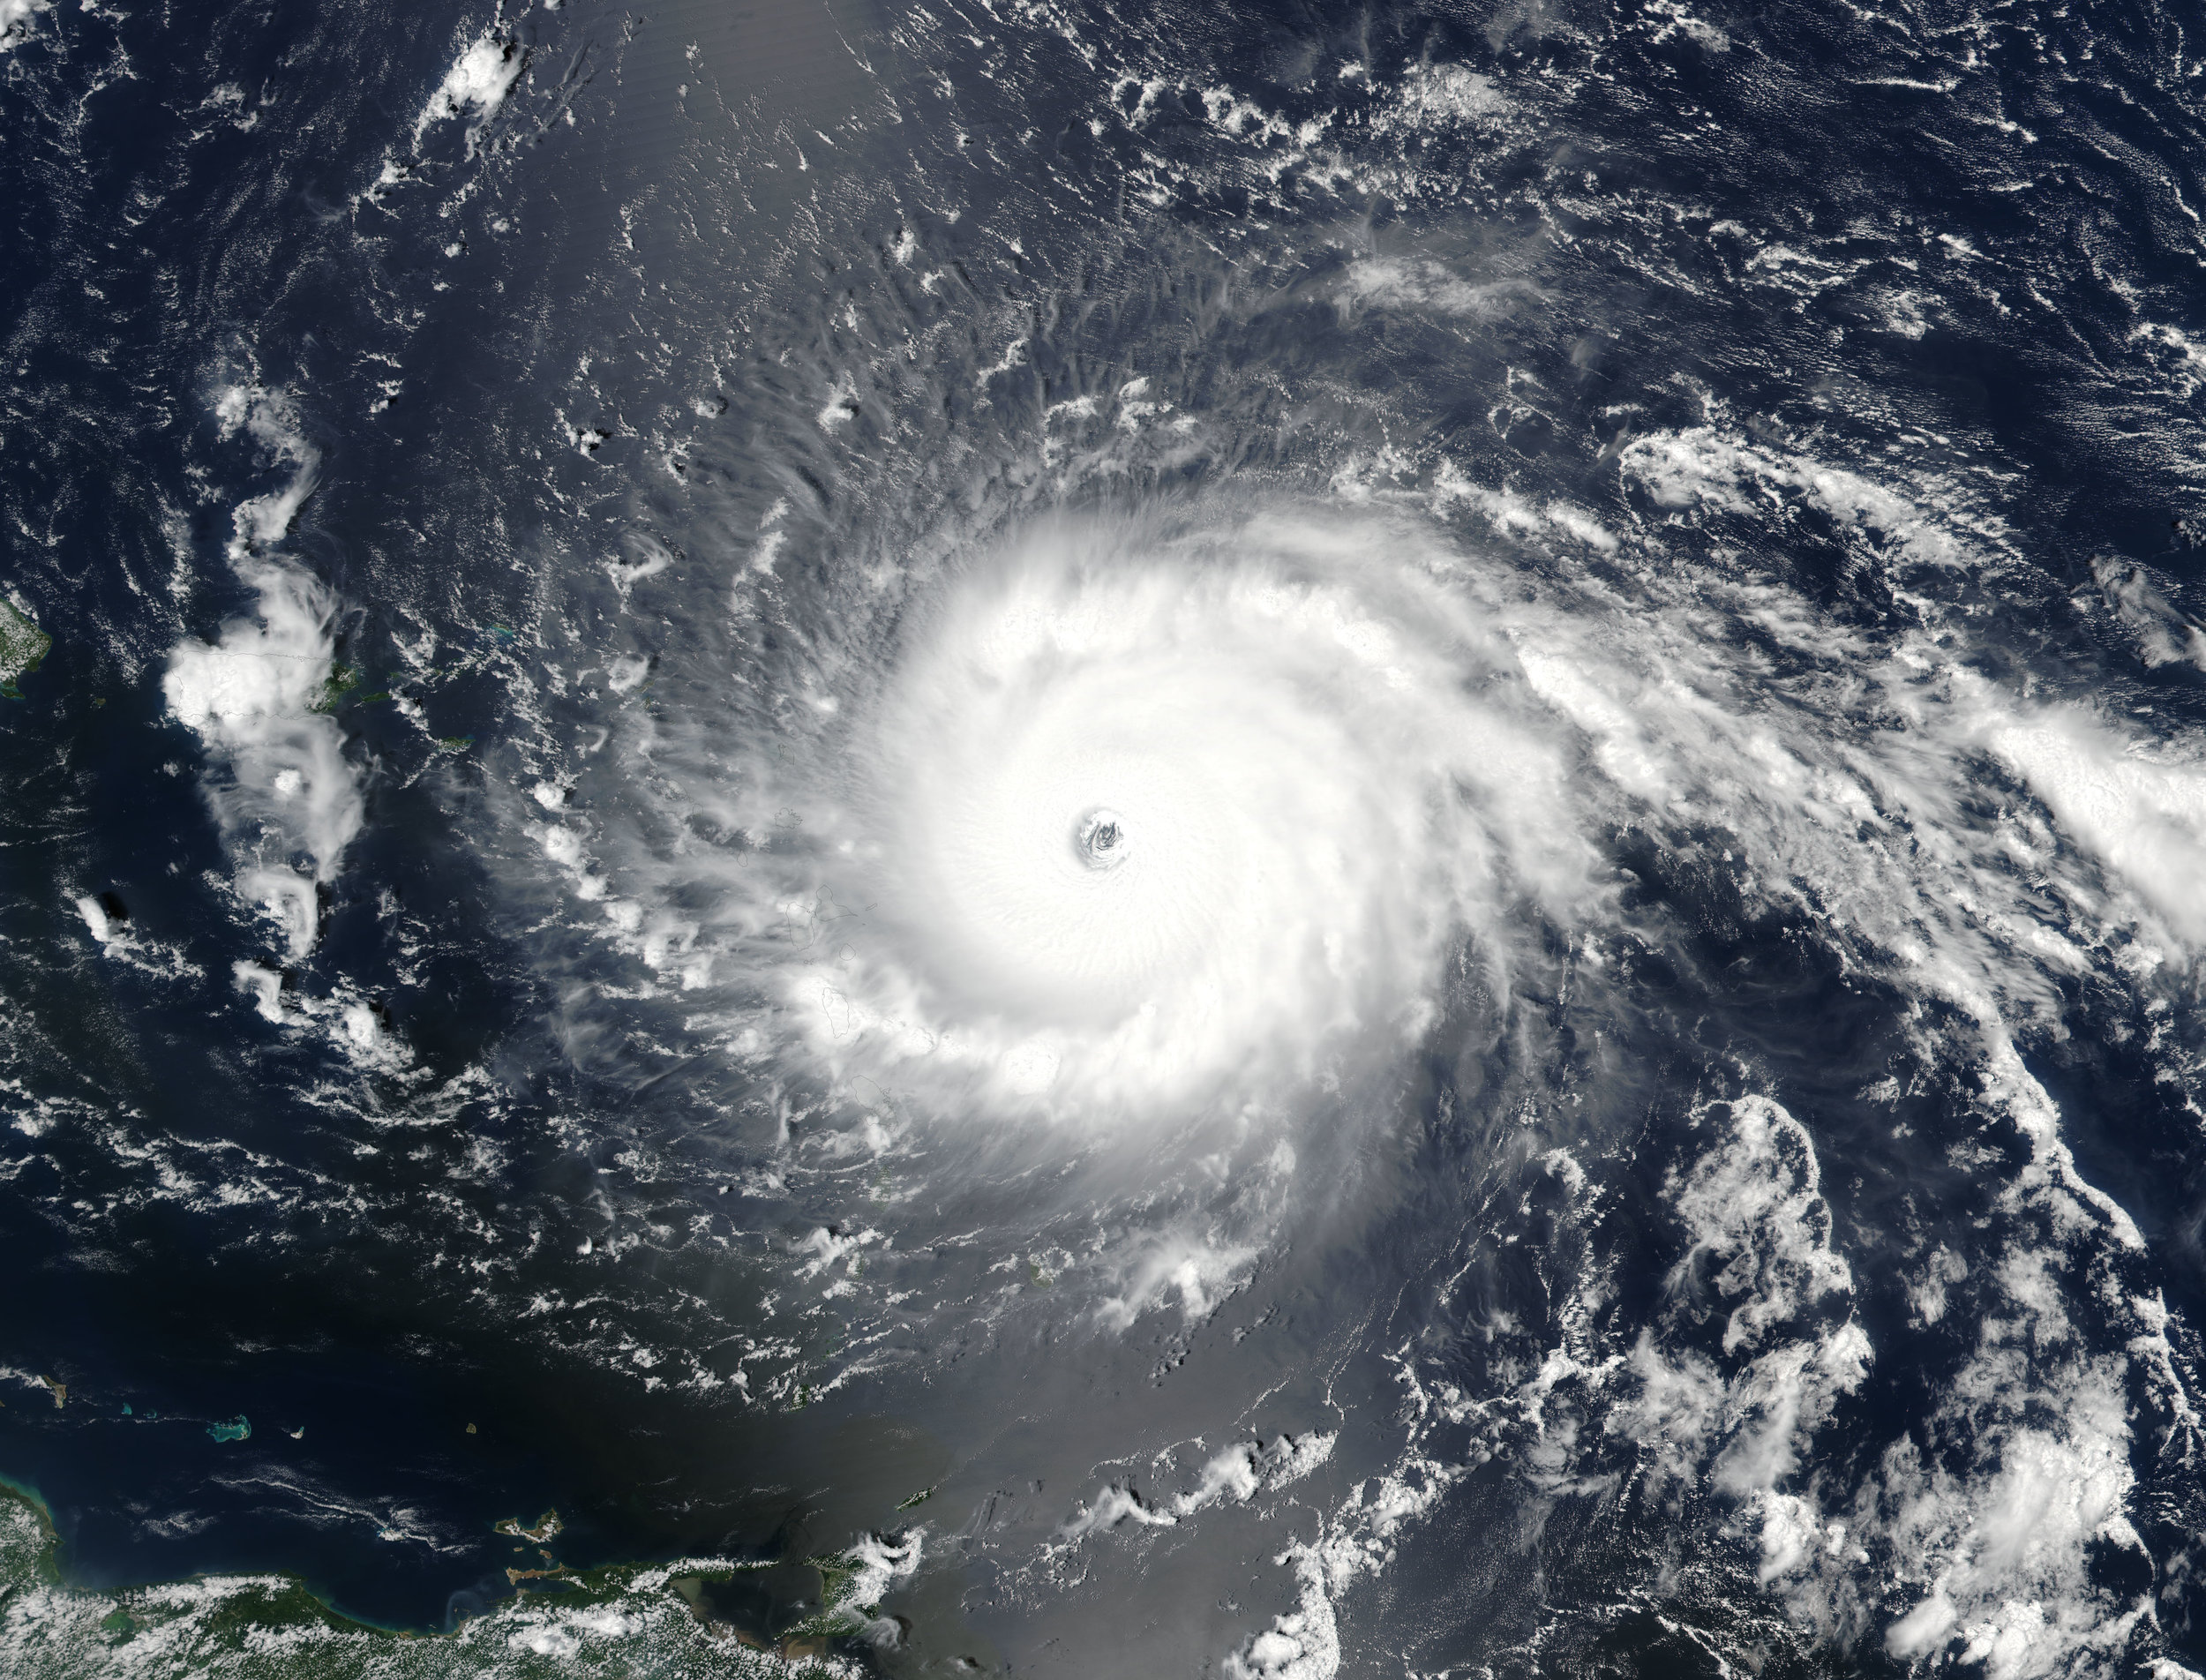 Hurricane Irma as it hit the Leeward Islands in early September 2017.